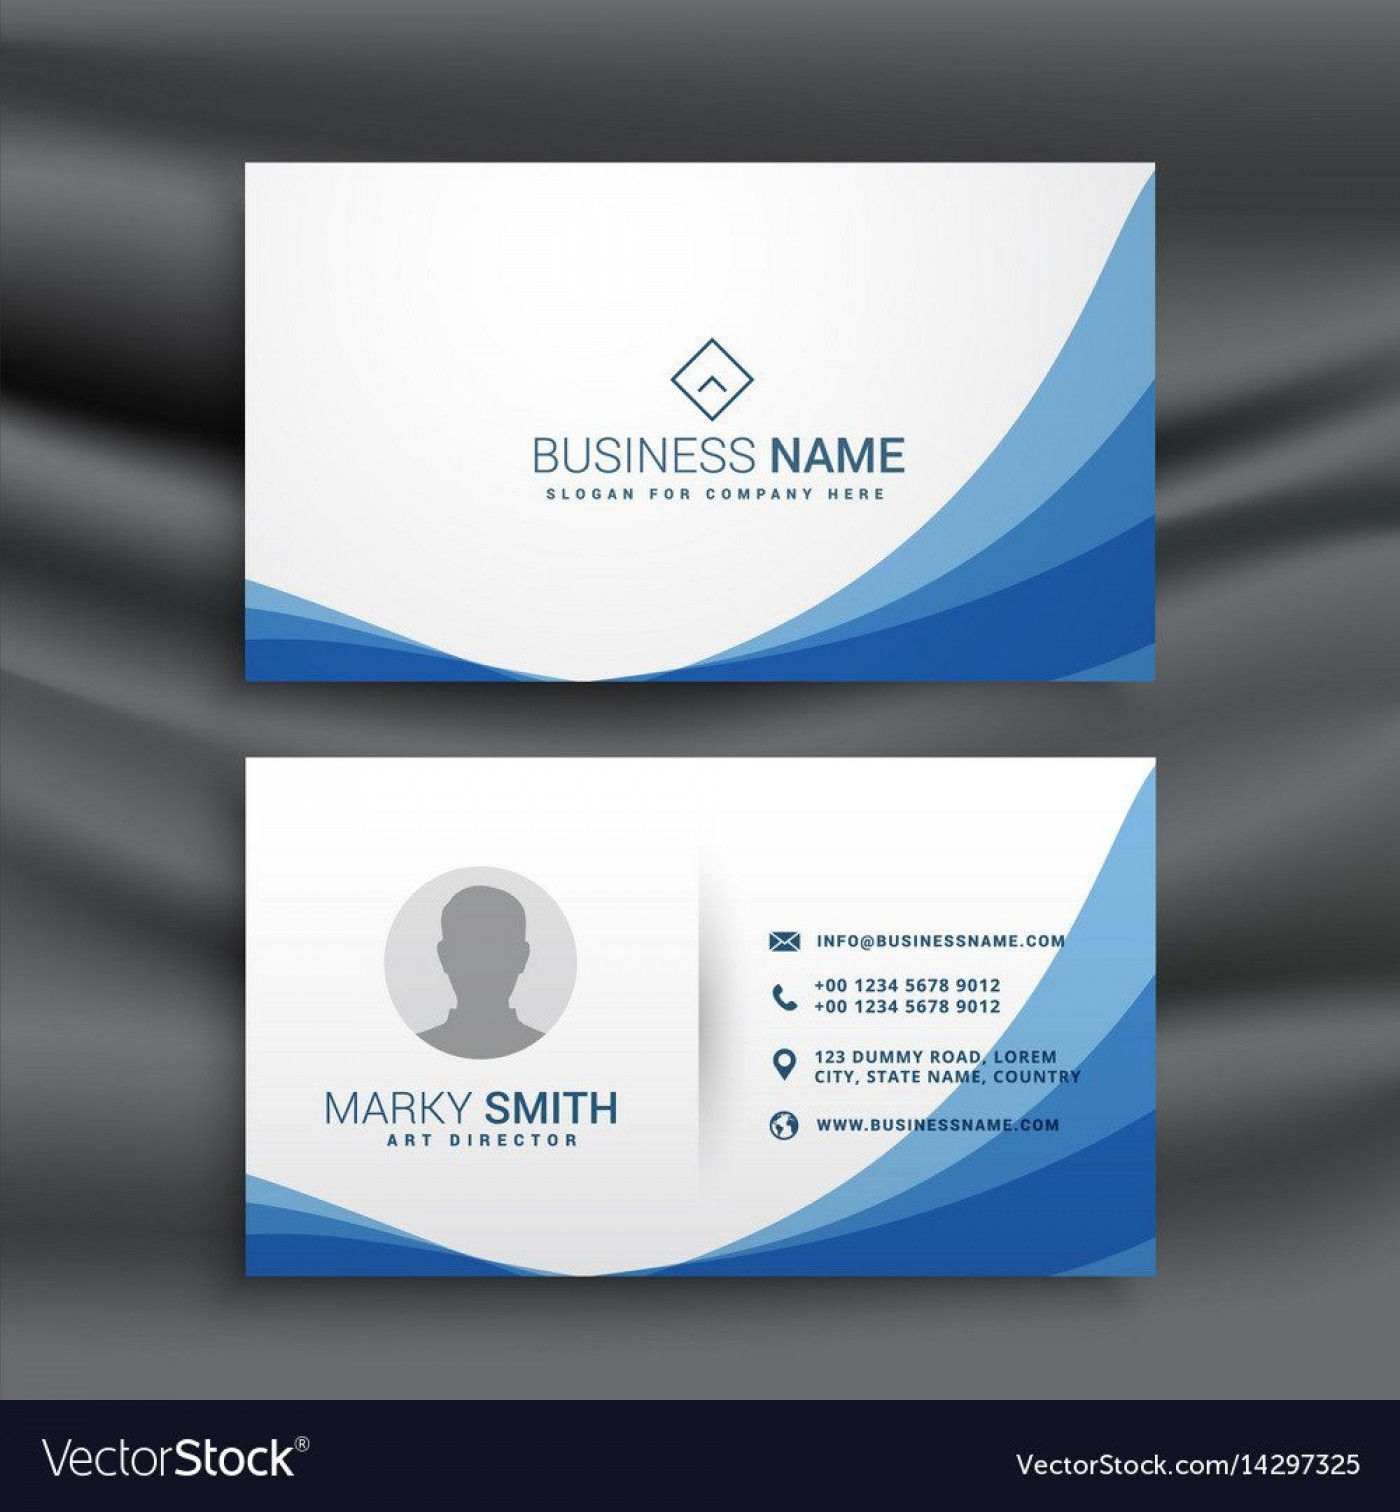 002 Incredible Simple Busines Card Design Template Free High Resolution  Minimalist Psd Download1400